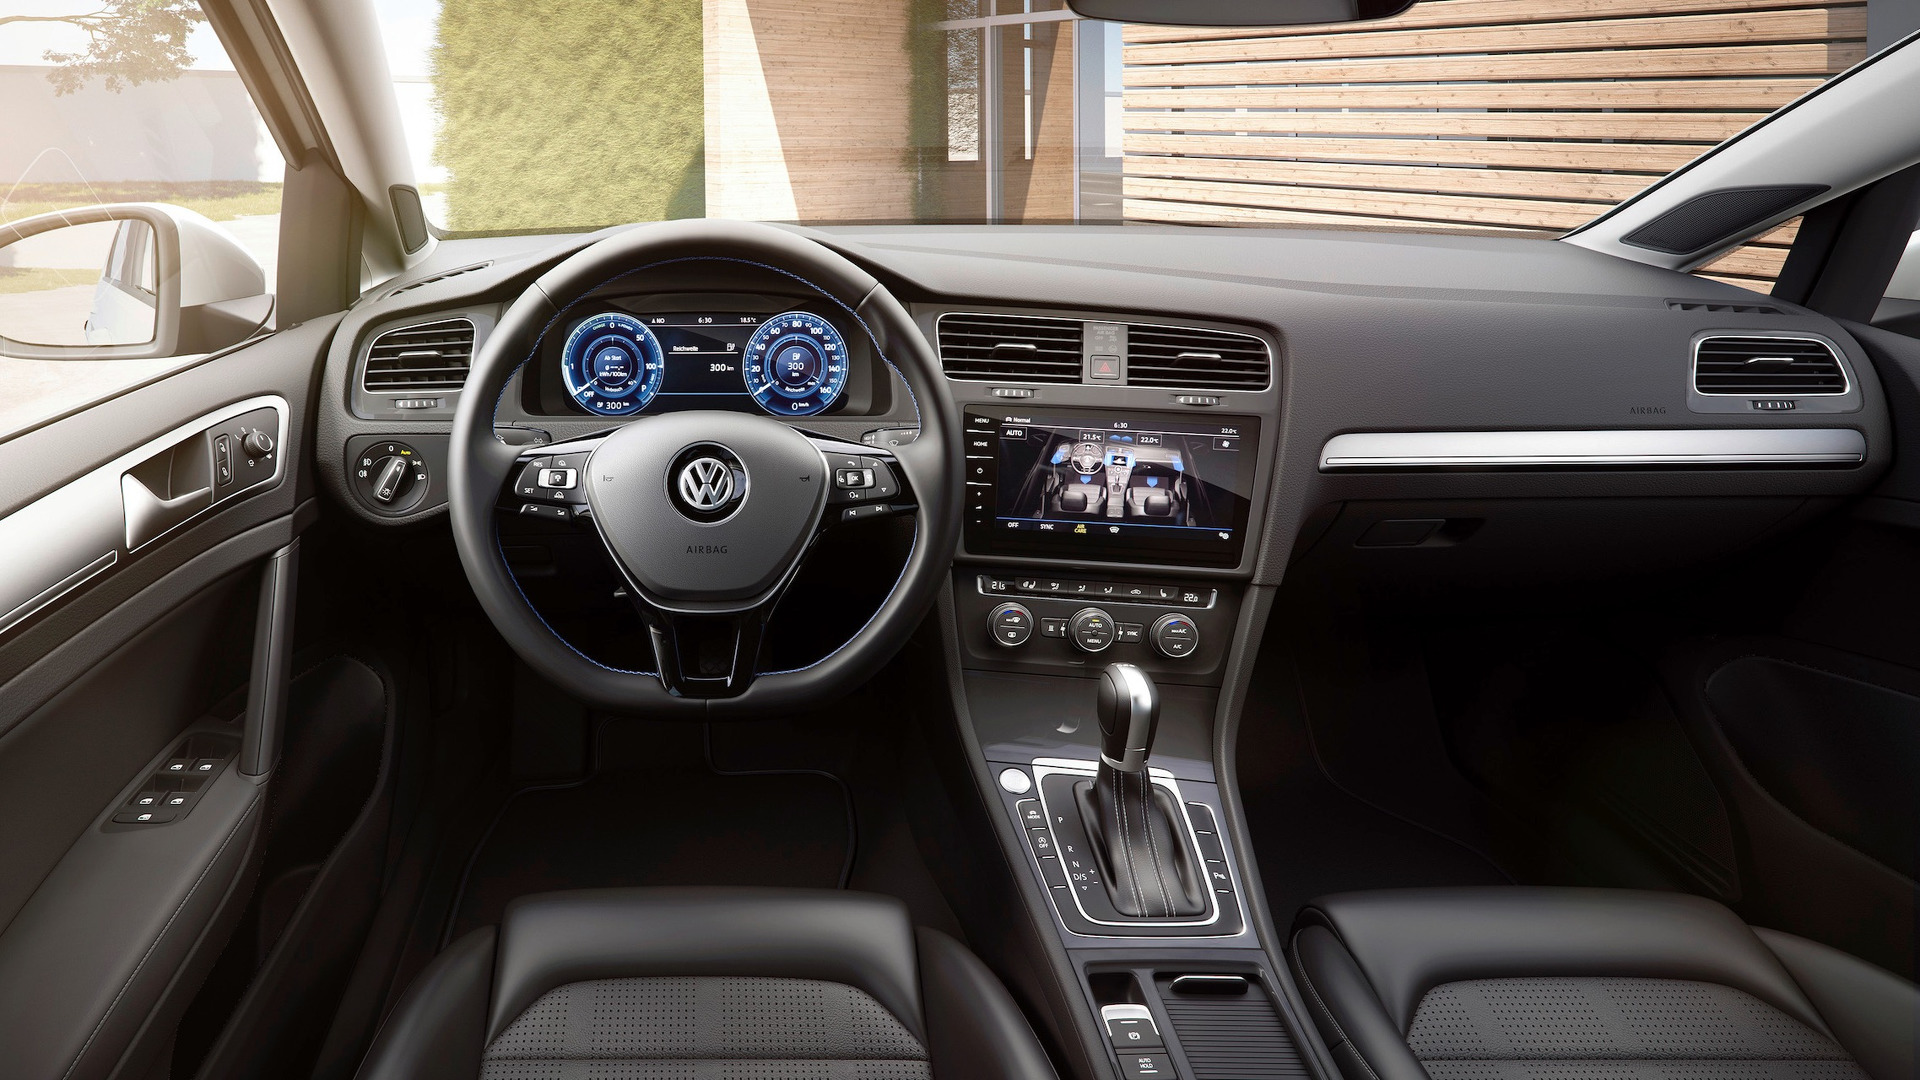 Vw E Golf Facelift With 300 Km Range Costs 35 900 In Germany